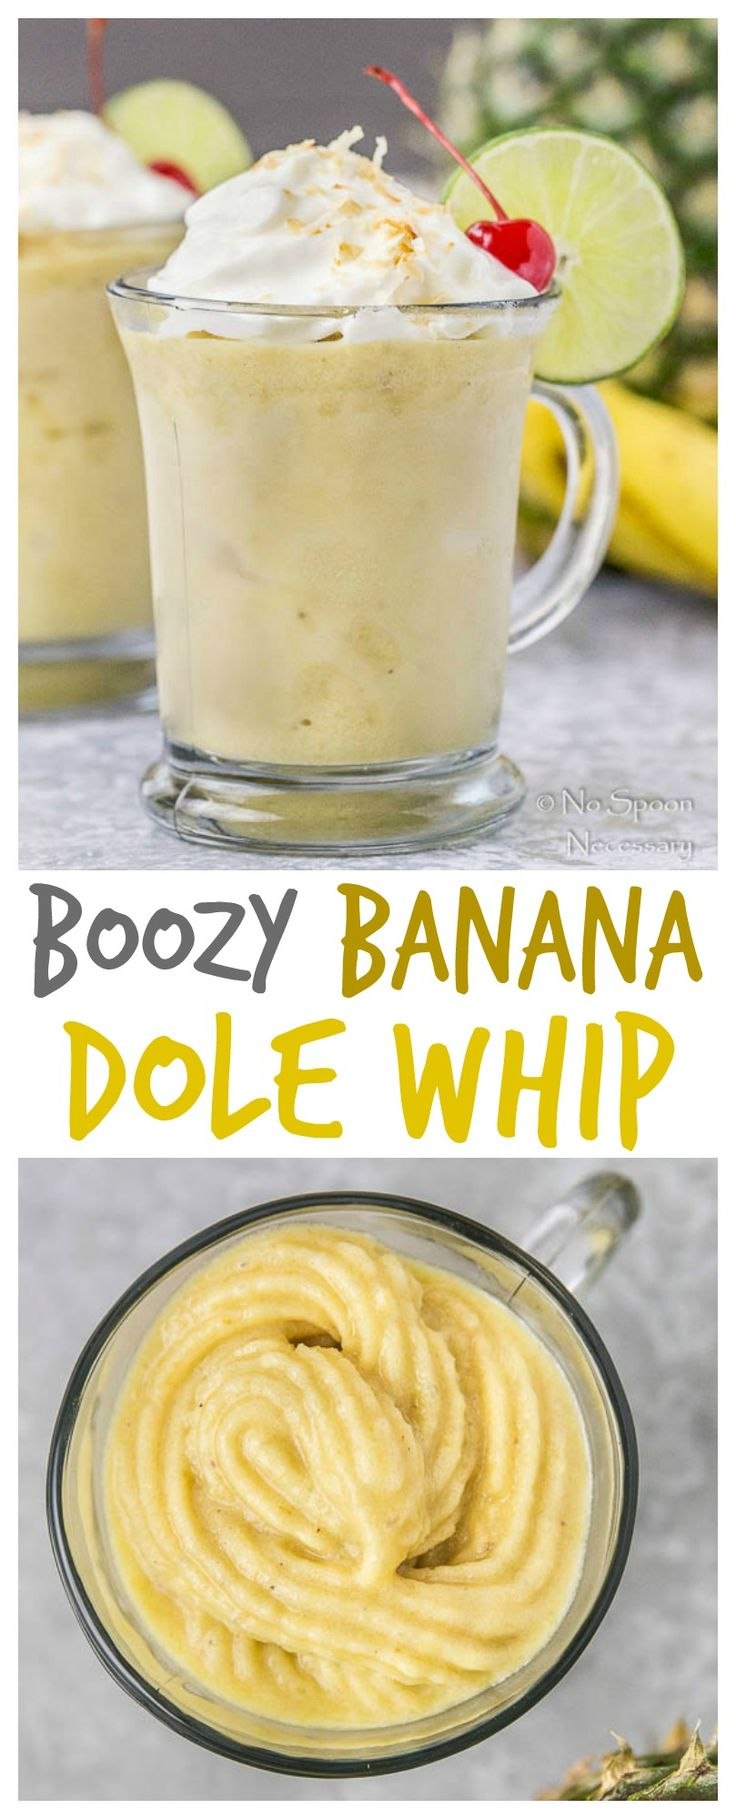 A Spin On The Disney Dole Whip - This Adult Only Version Is A Tropical Paradise For The Taste Buds!!  Boozy Banana Dole Whip.